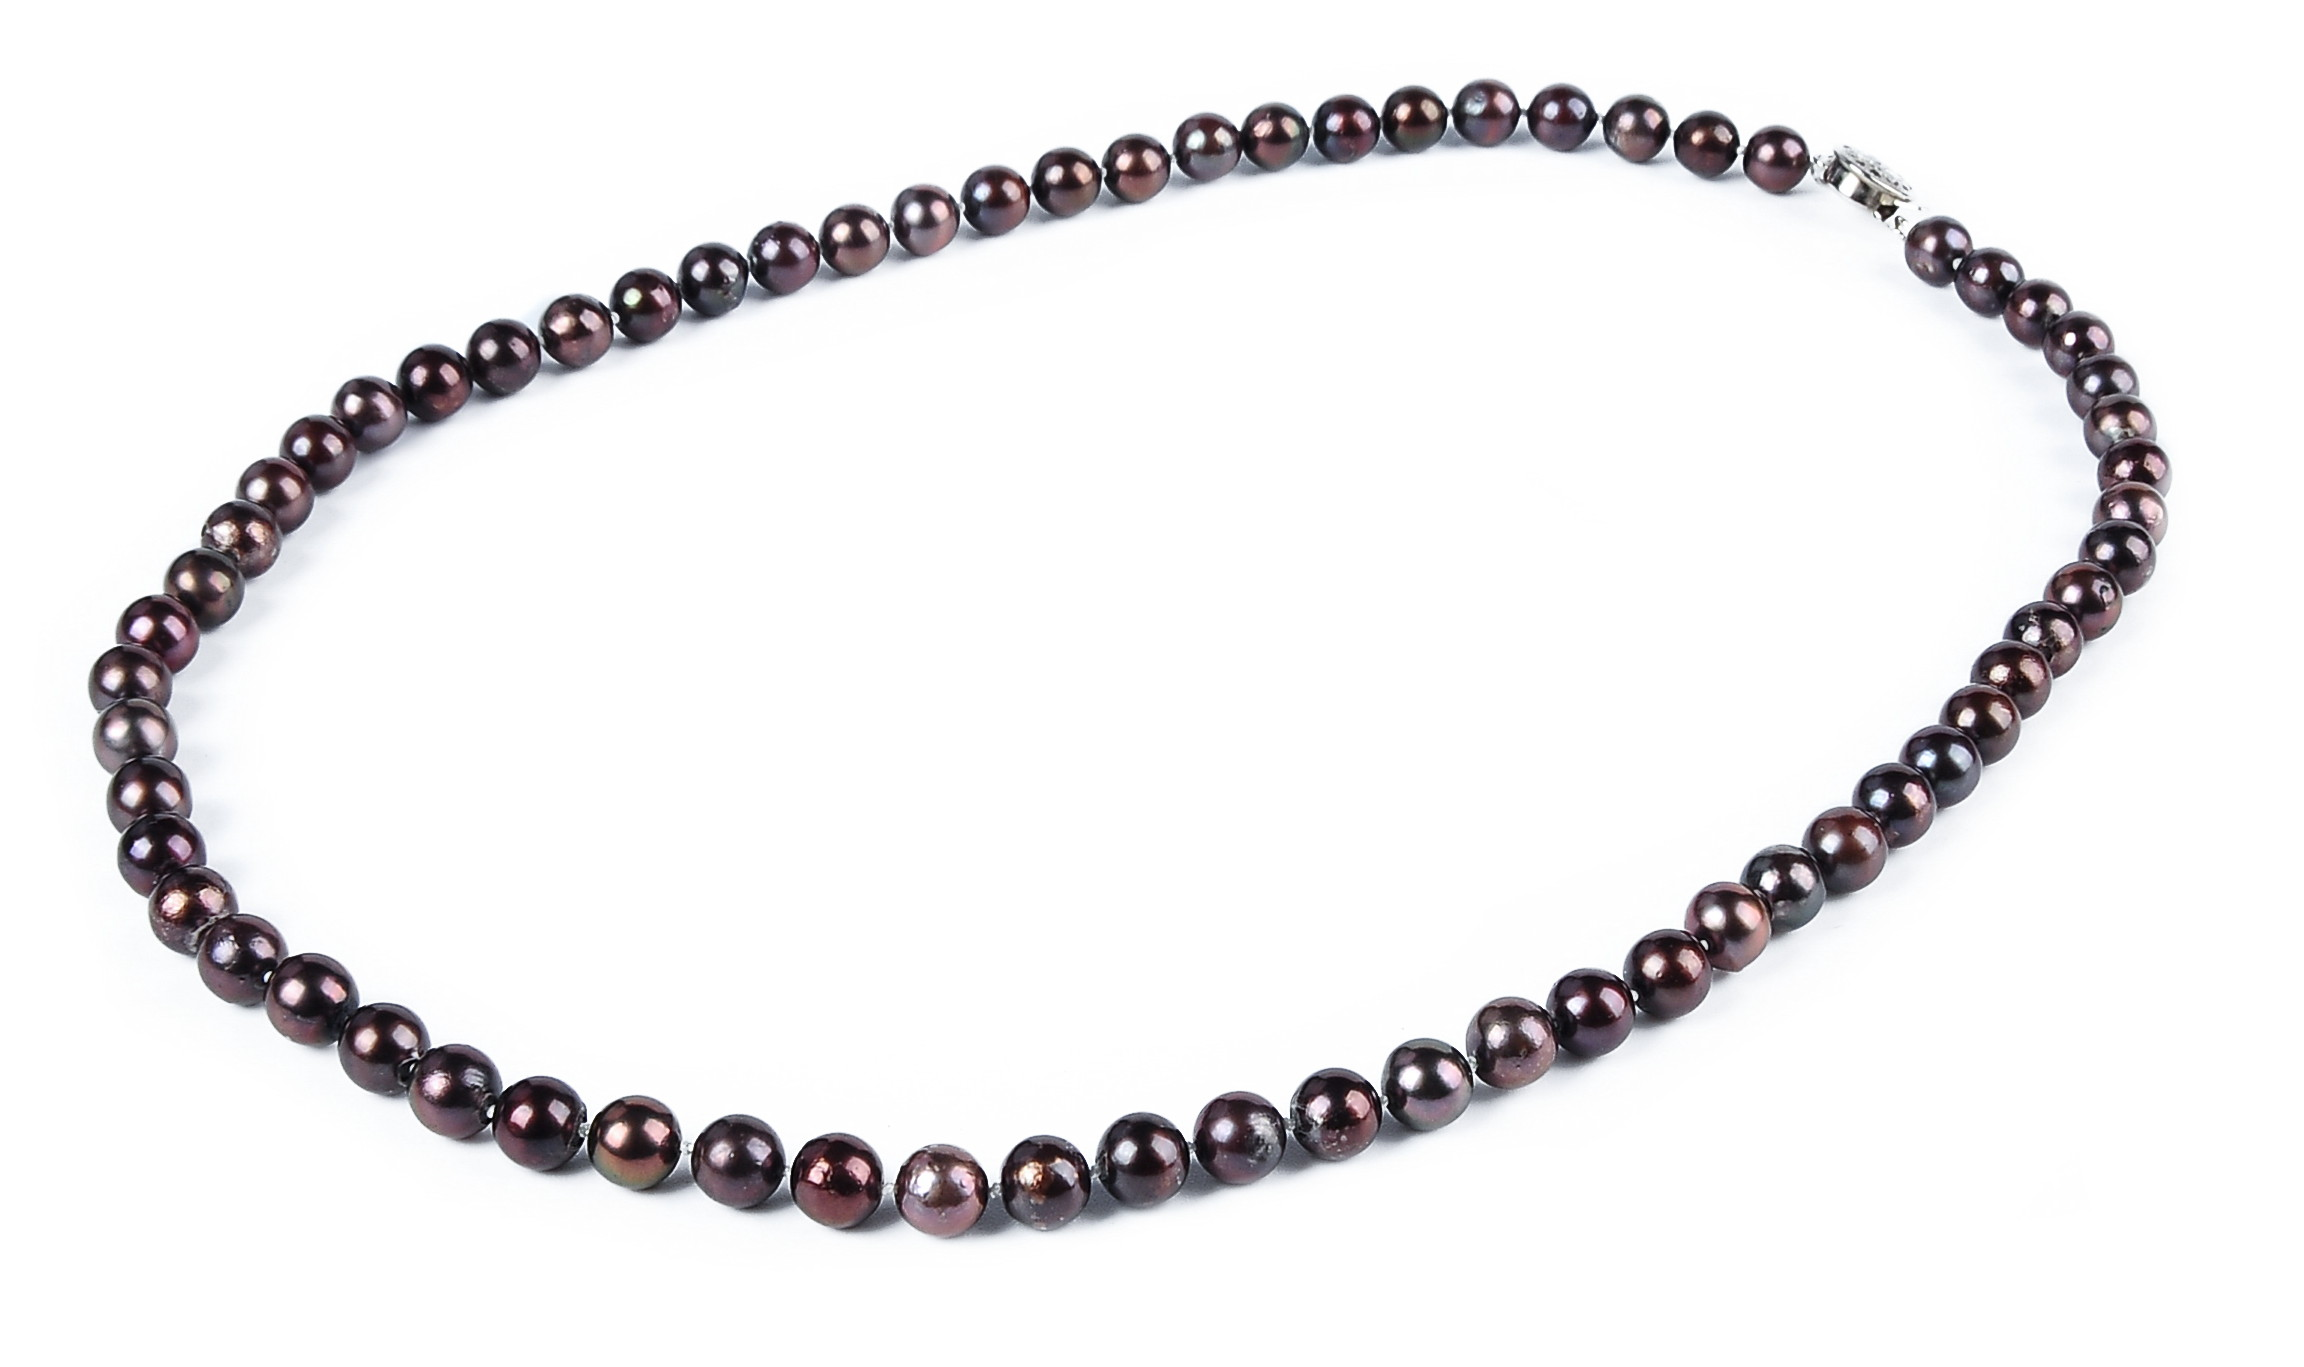 6.5mm AA+ Pinkish Black Akoya Cultured Pearl Necklace Sku#: nk253